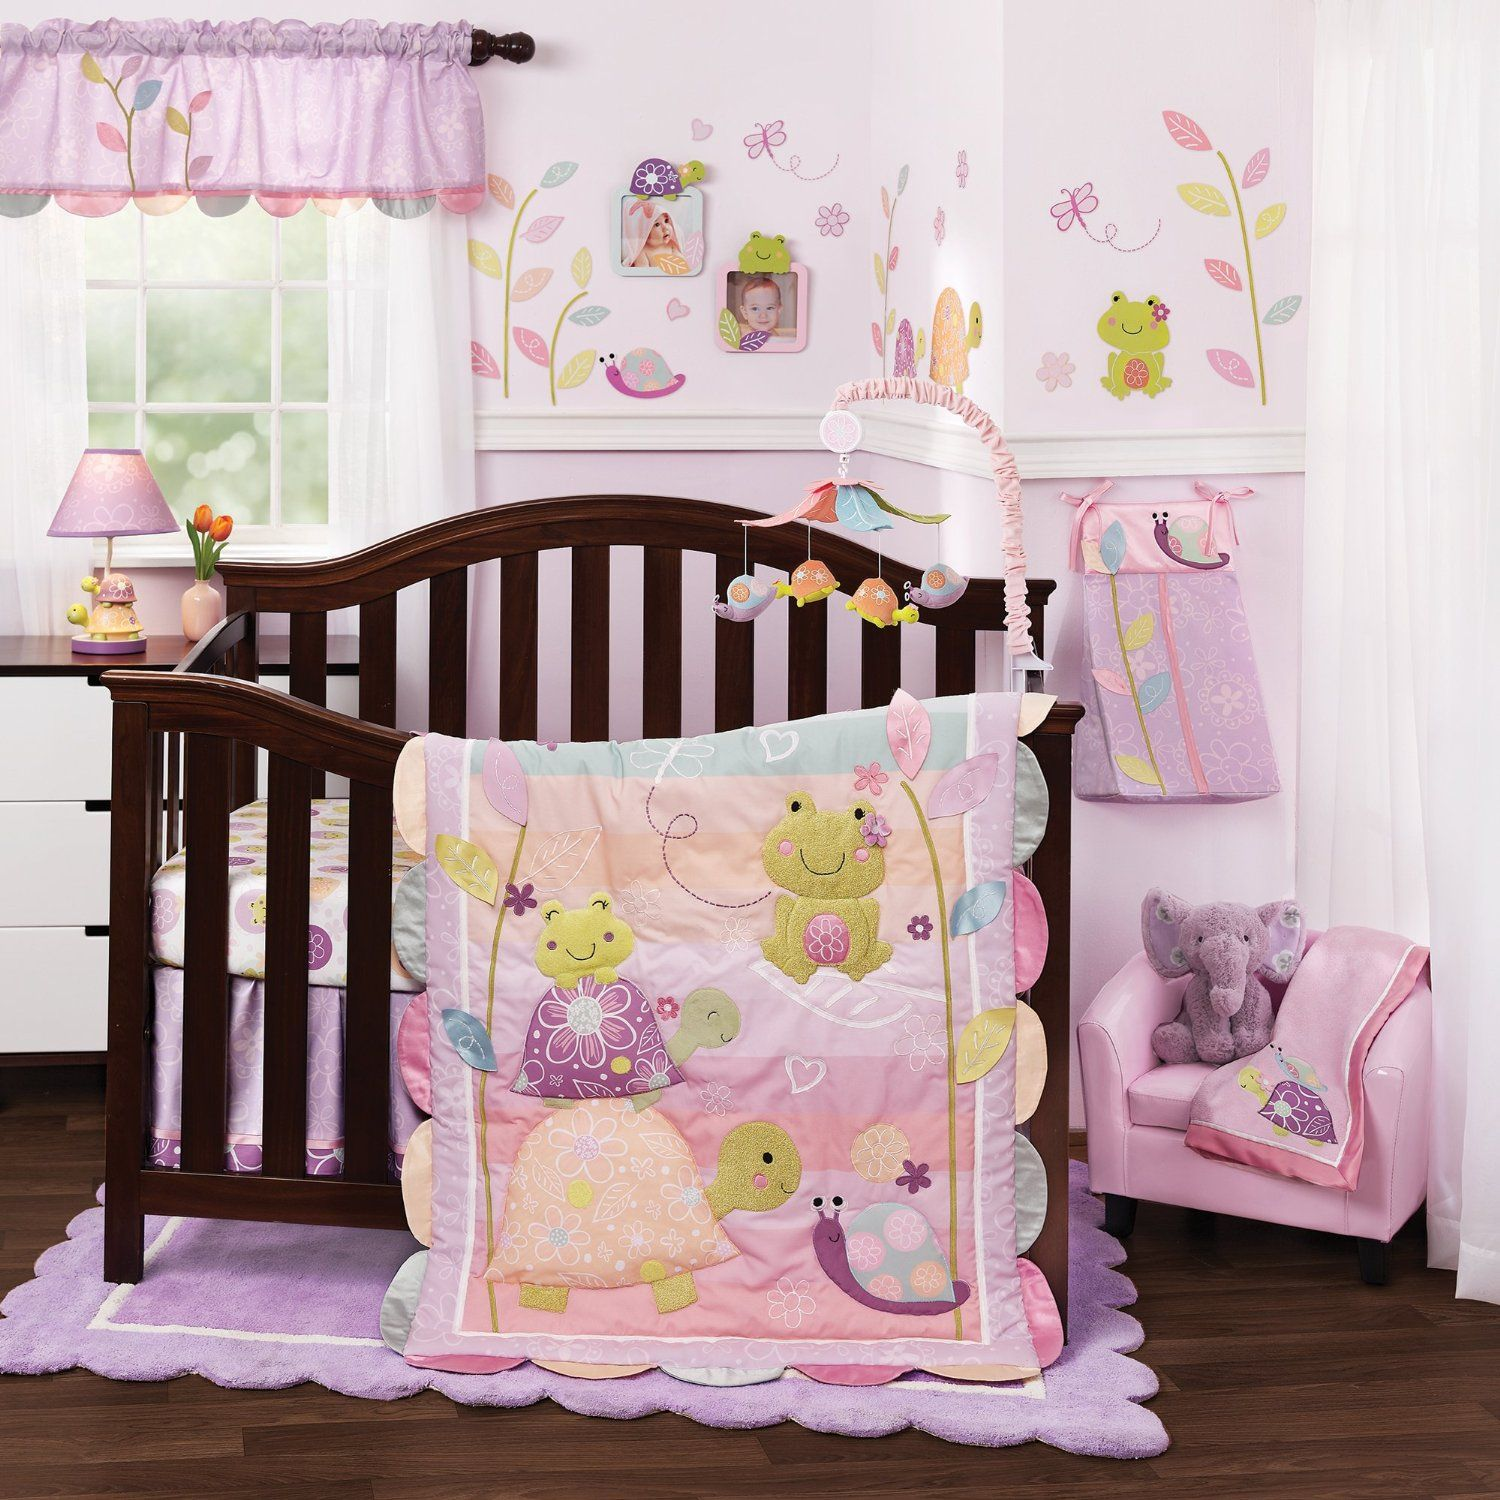 Lambs And Ivy Puddles Baby Bedding And Nursery Accessories Crib